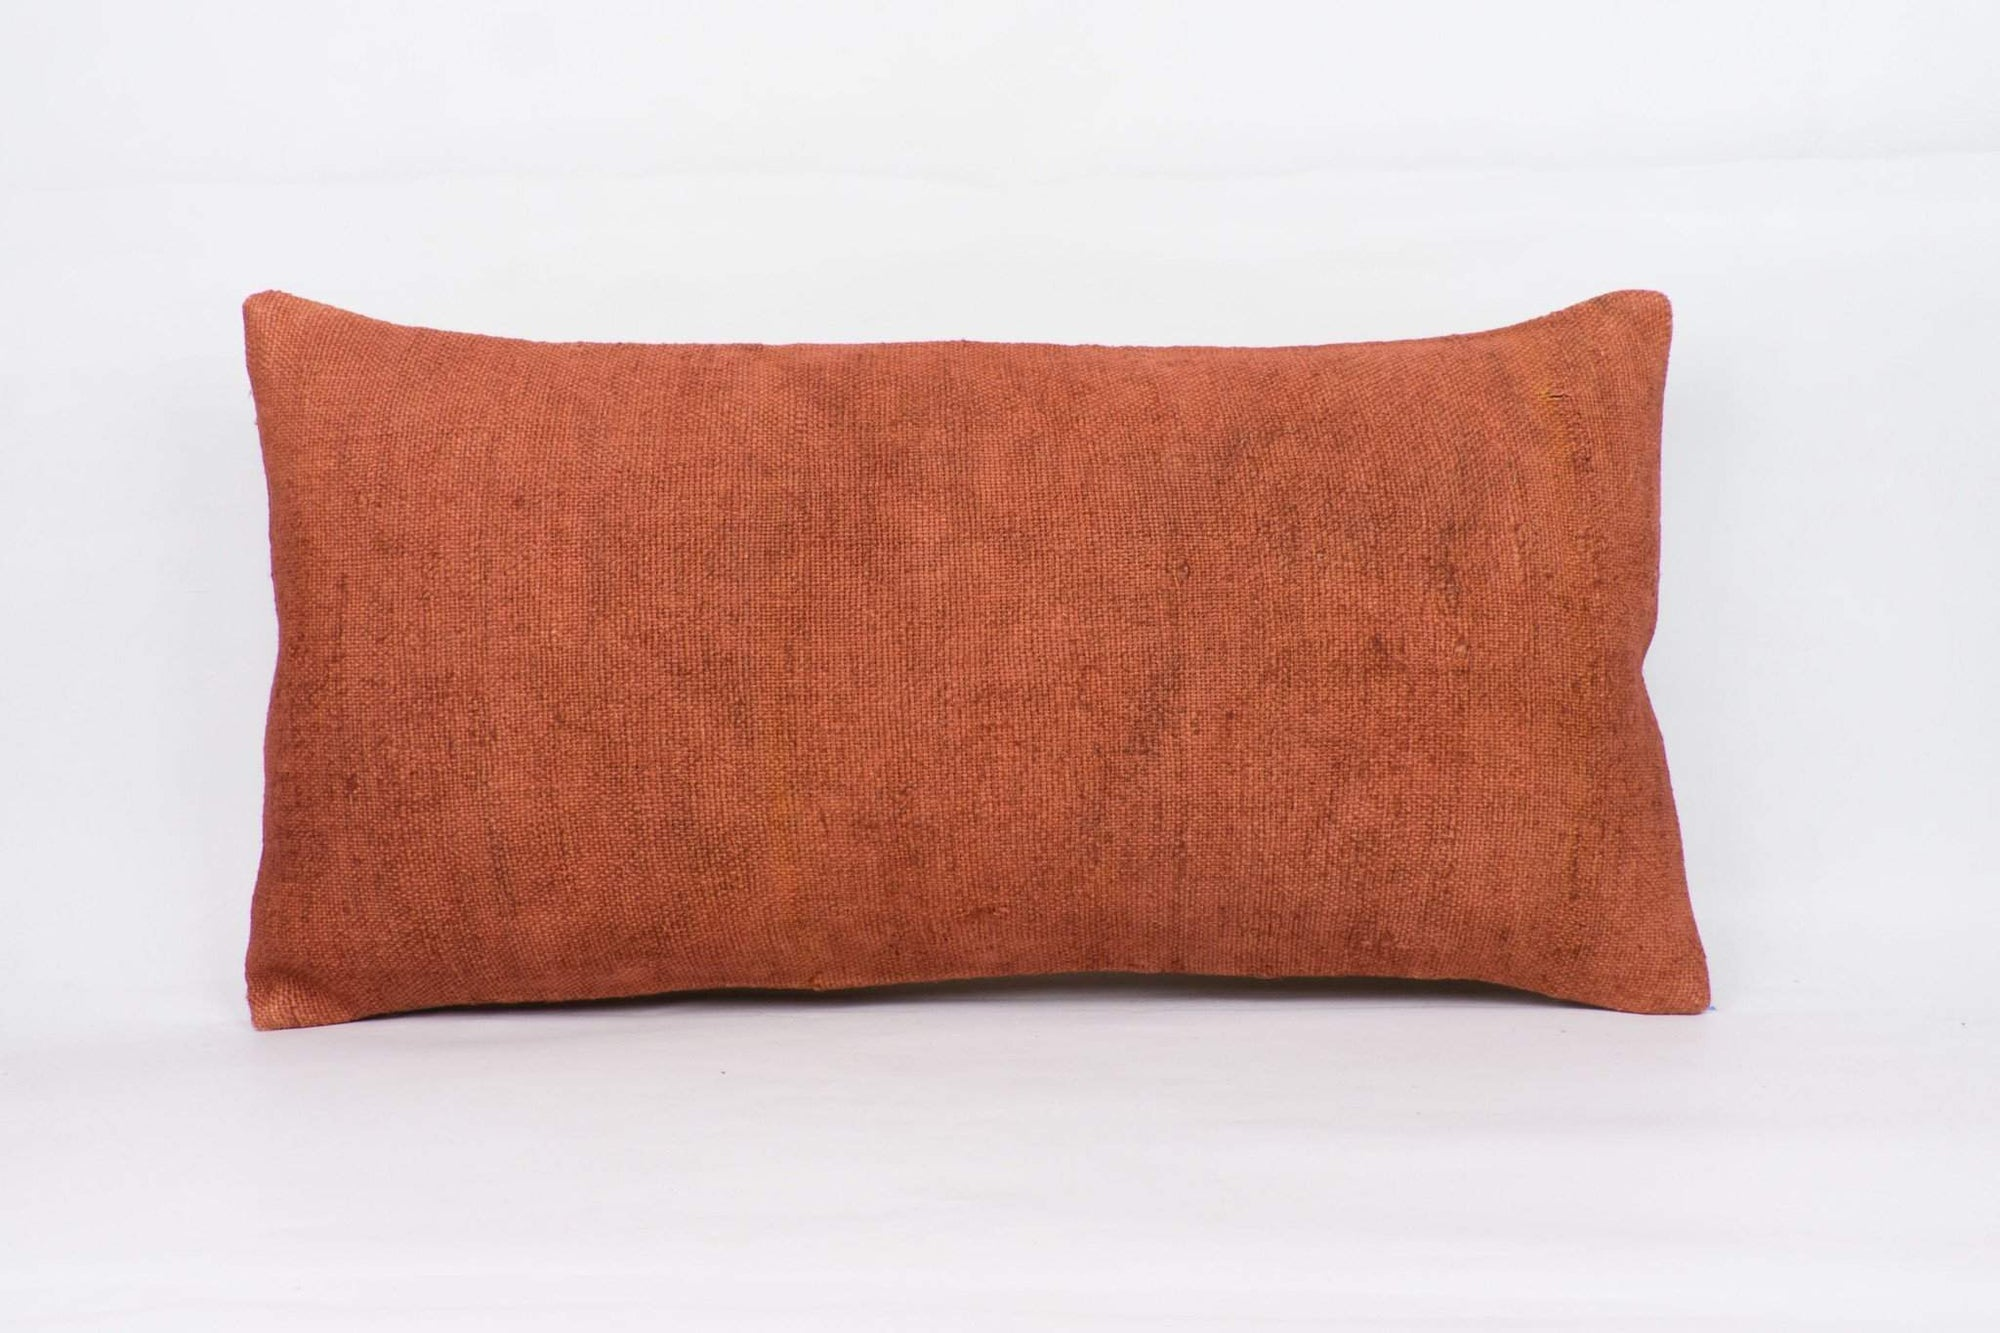 Plain Brown Kilim Pillow Cover 12x24 4206 - kilimpillowstore  - 1